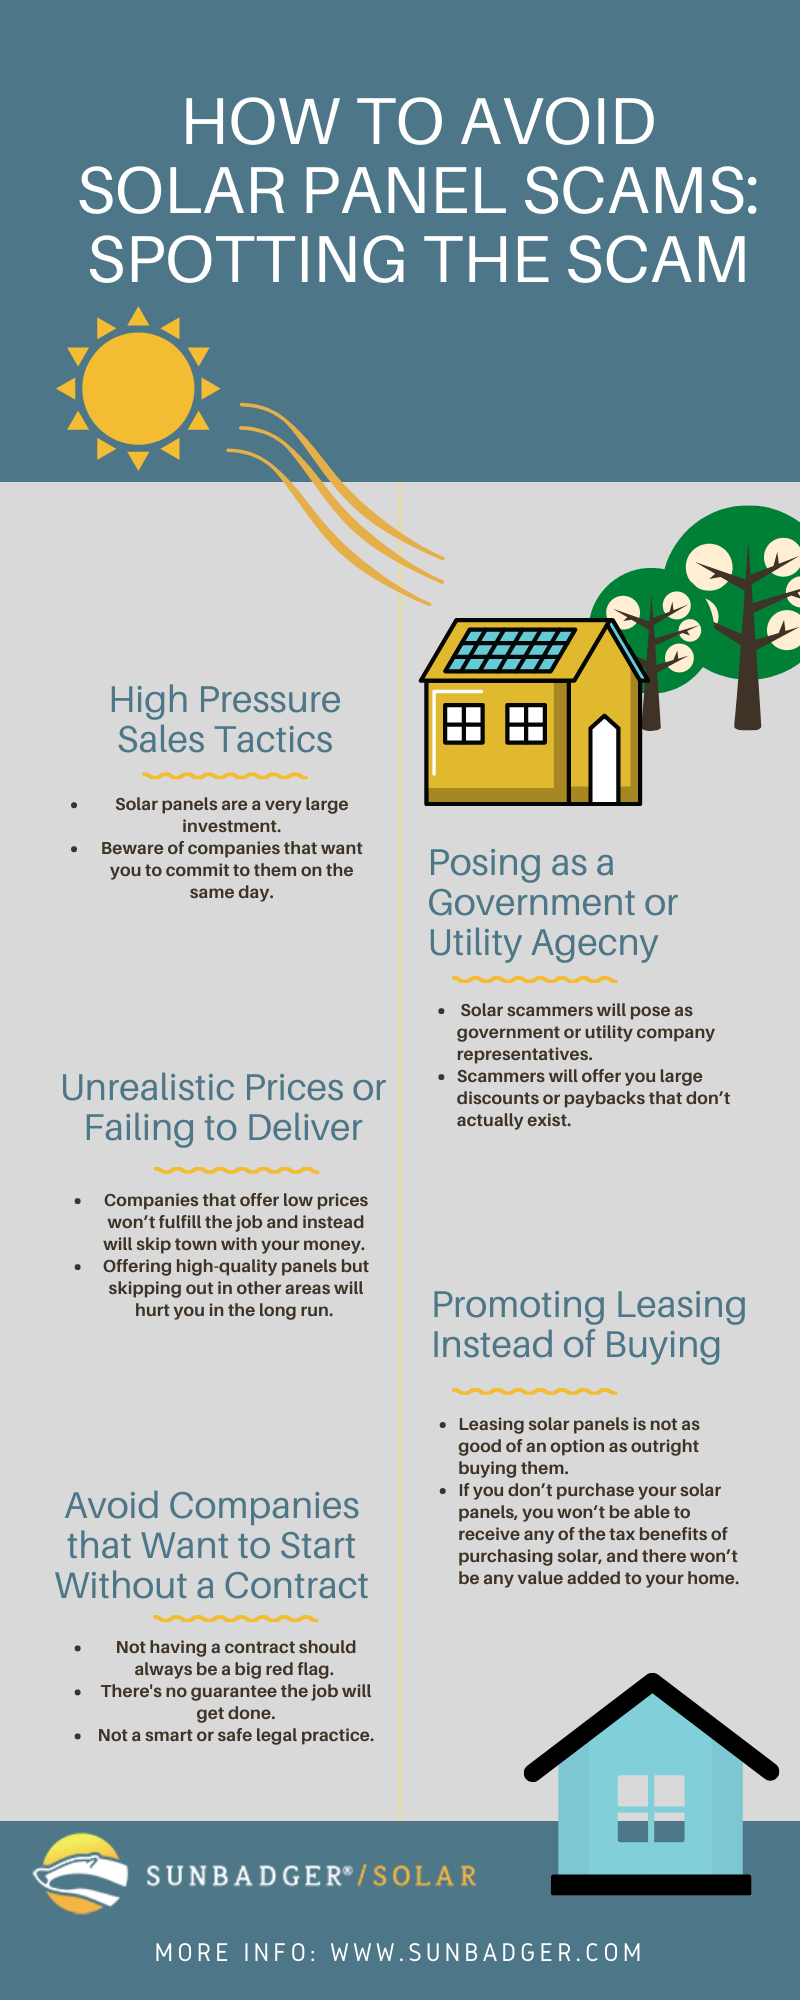 solar panel scams infographic